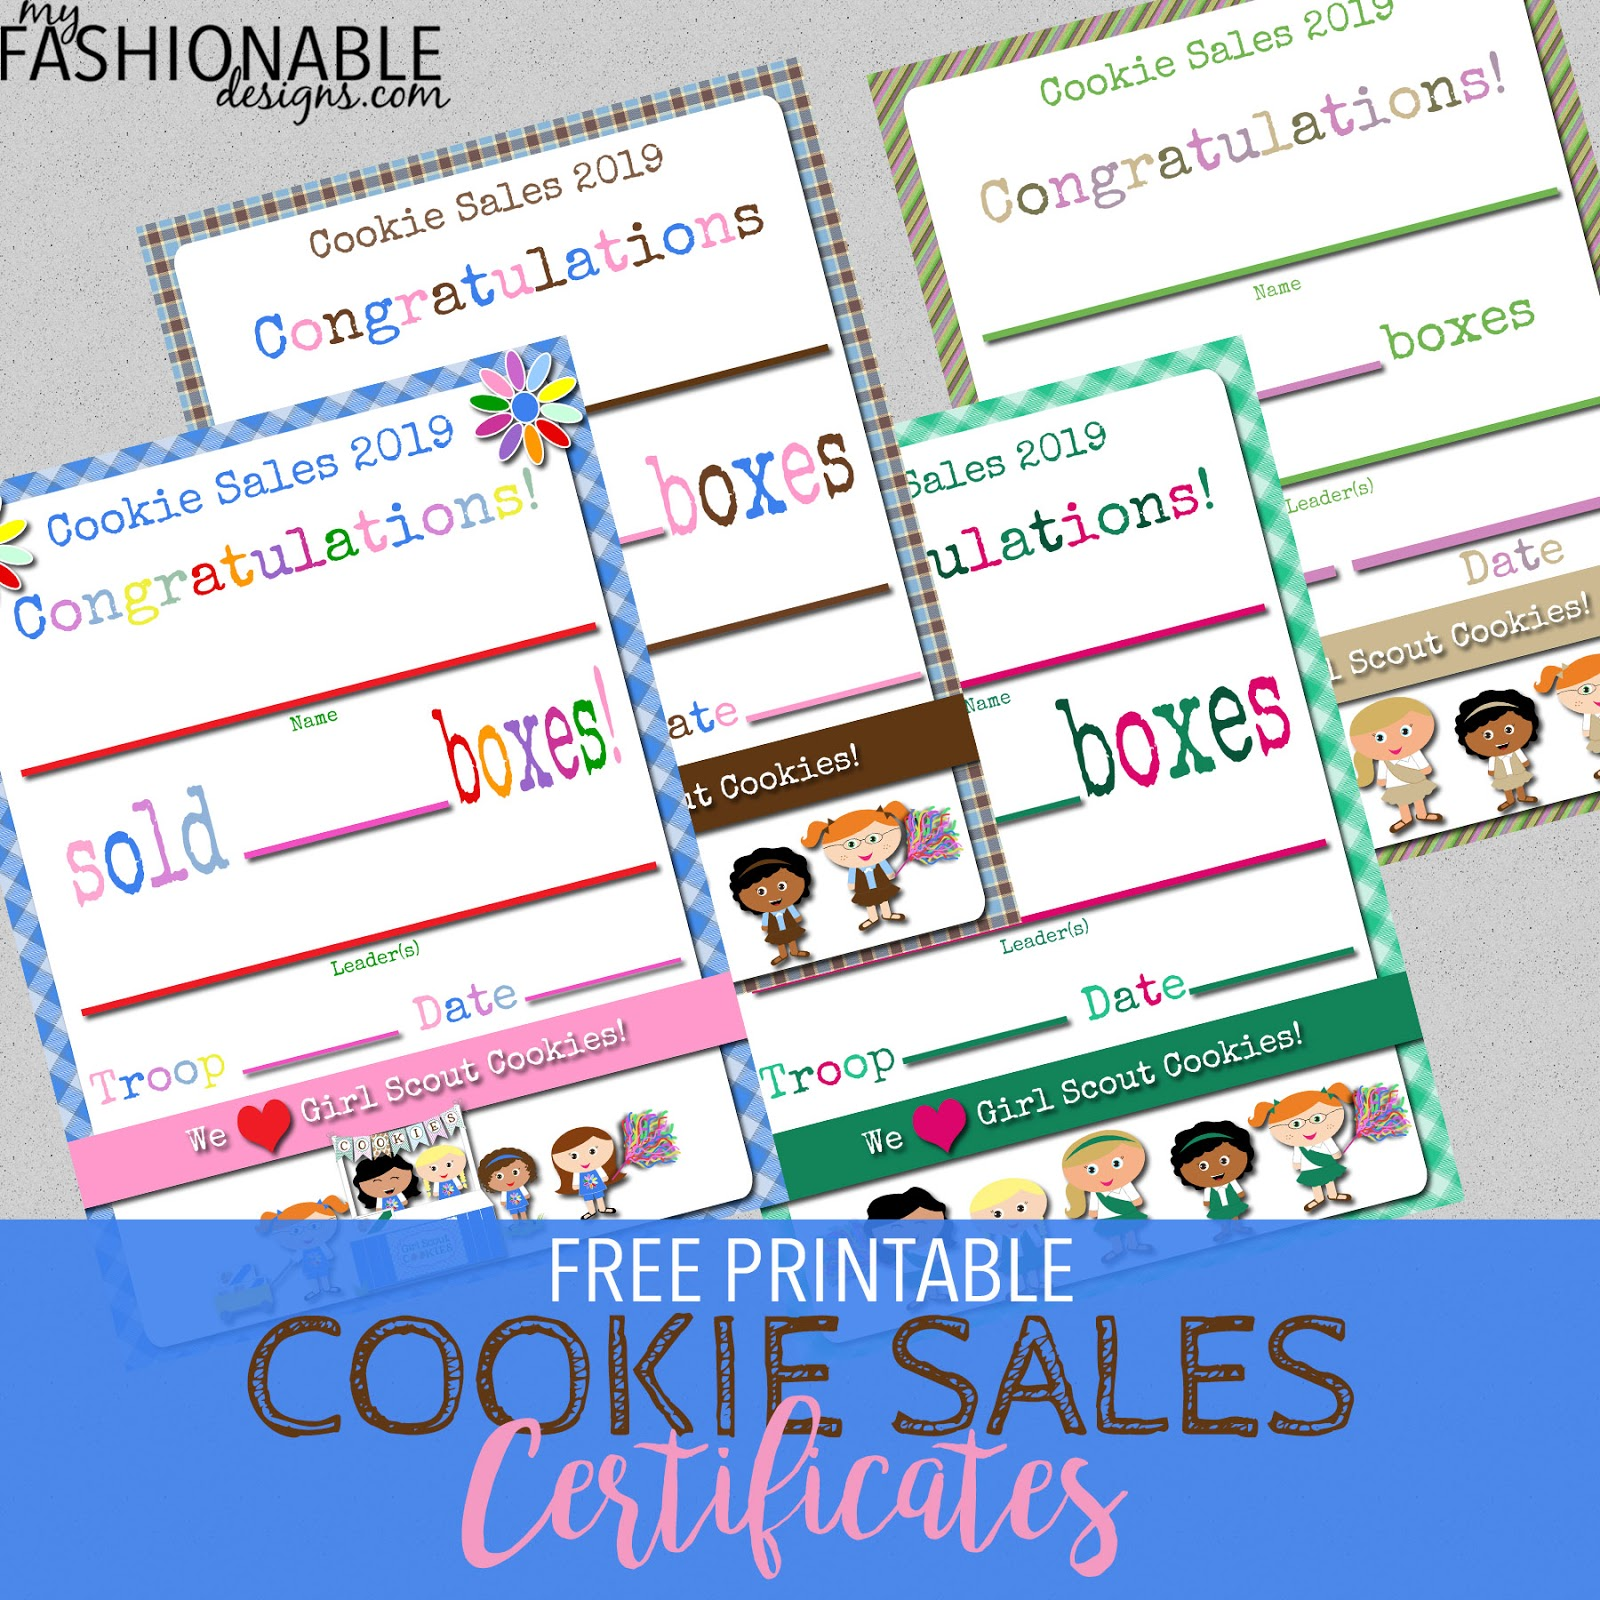 photograph about Girl Scout Certificates Printable Free called My Contemporary Types: Woman Scouts: No cost Printable Cookie